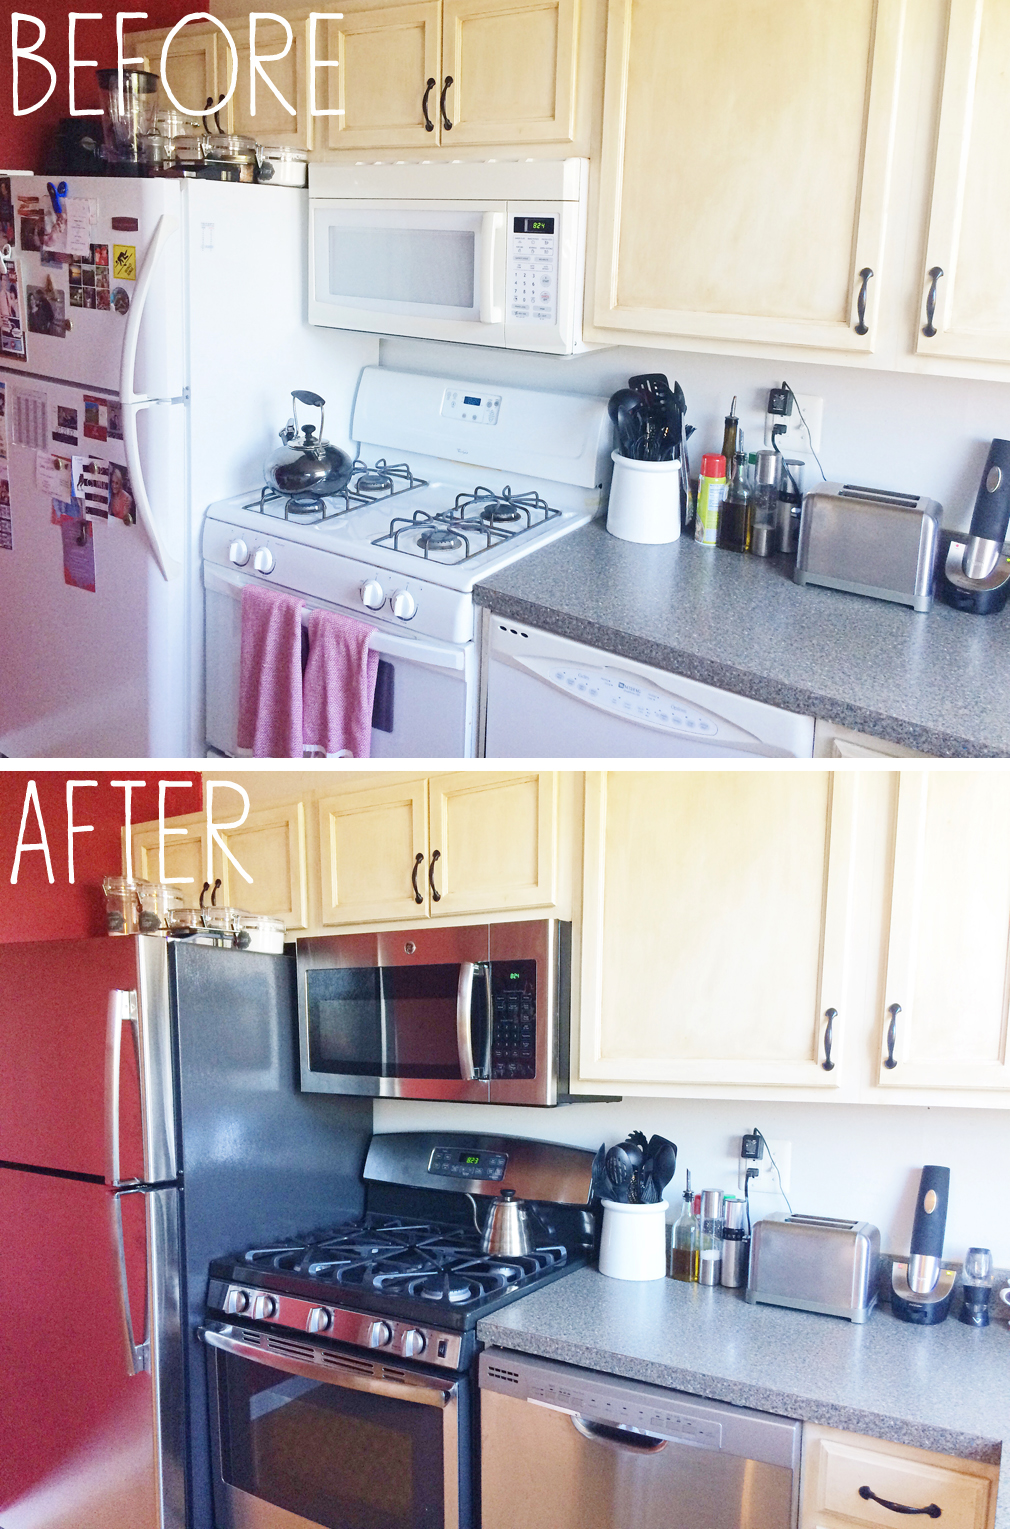 Before and After Kitchen Appliances 2